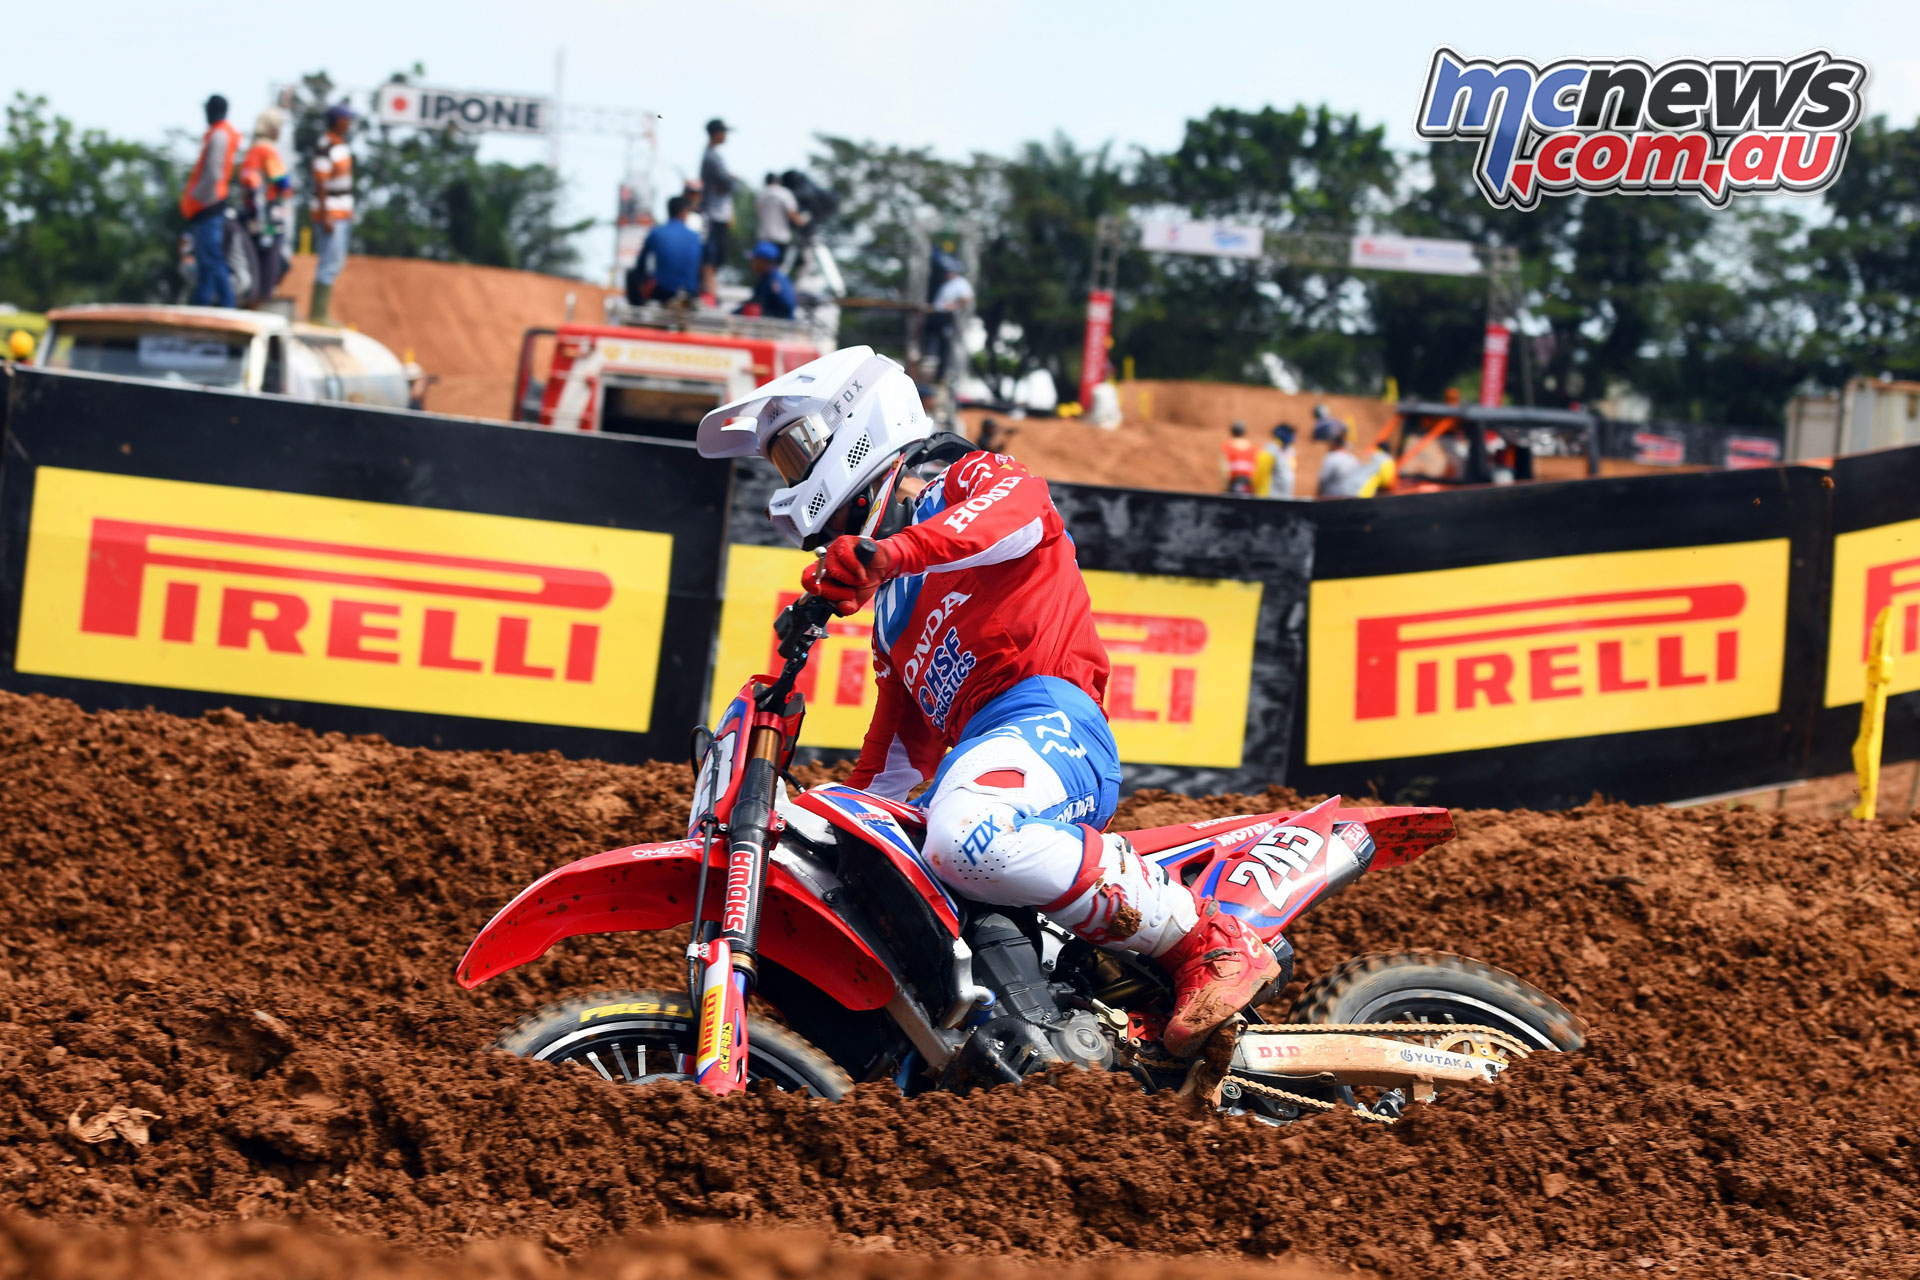 MXGP Indonesia Tim Gajser